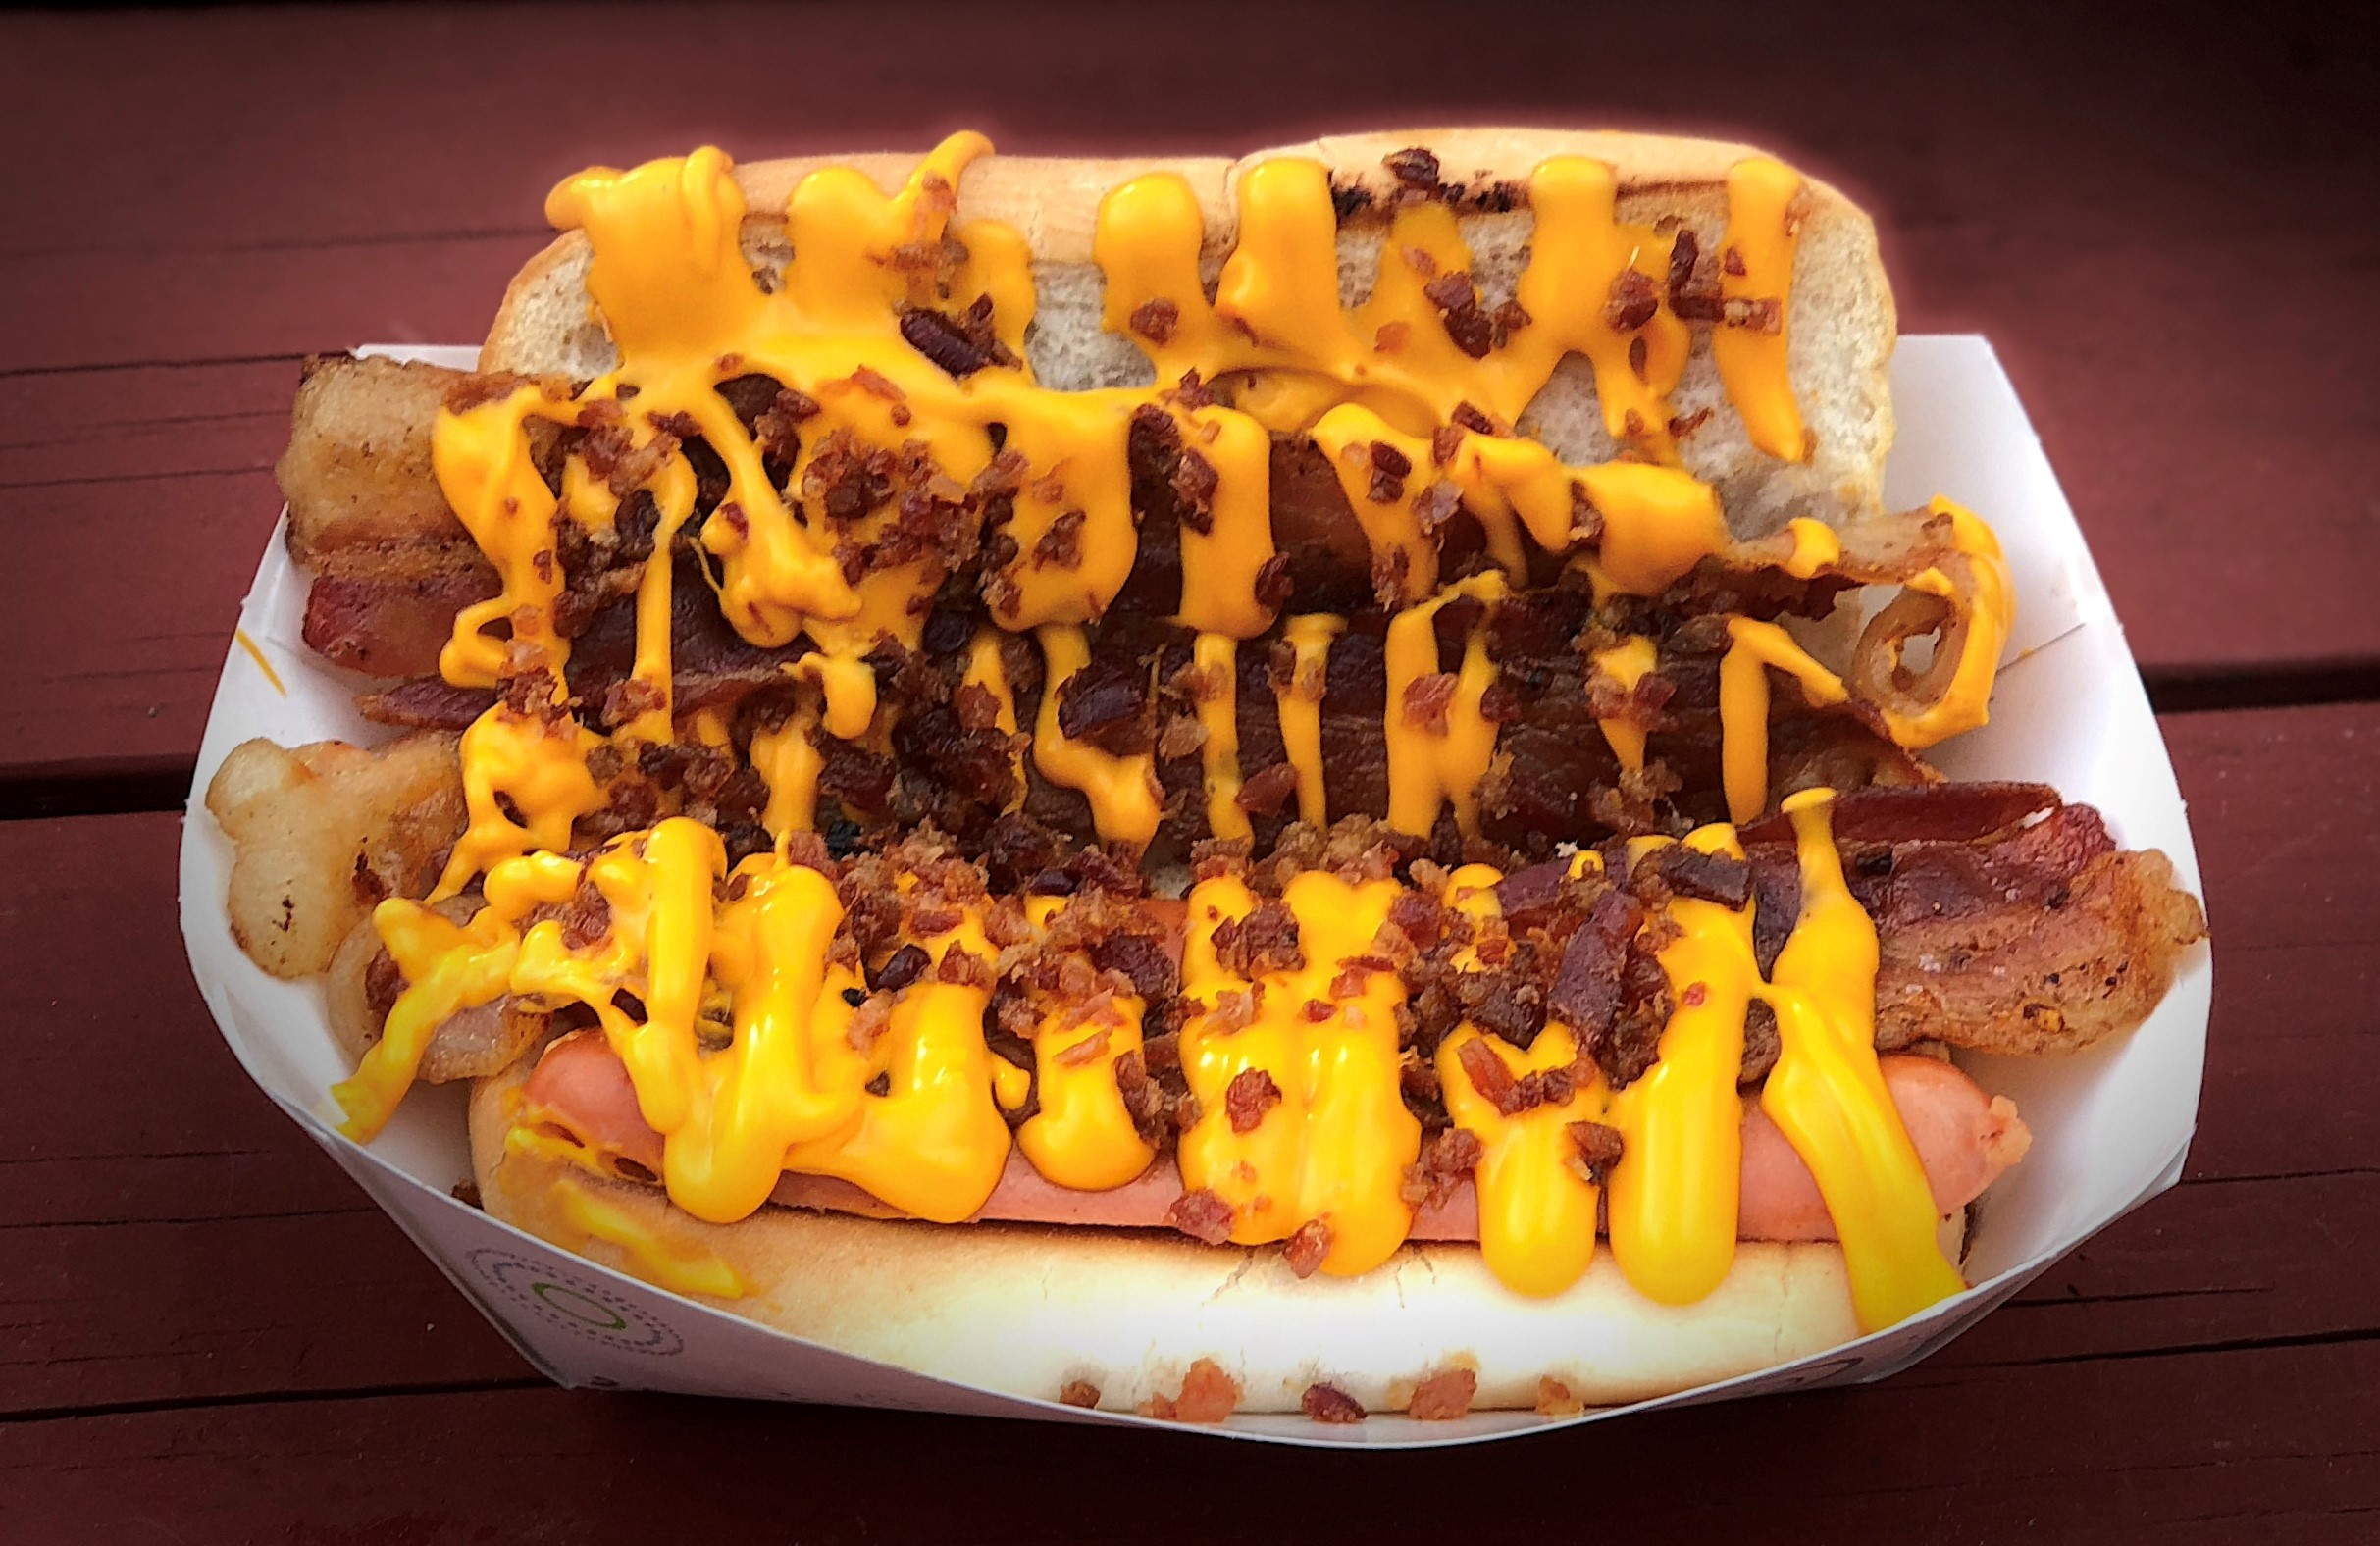 Pictured here:  Hog Dog Wiener featuring Bacon, Bacon, Bacon, Pepperoni, Cheese Sauce.